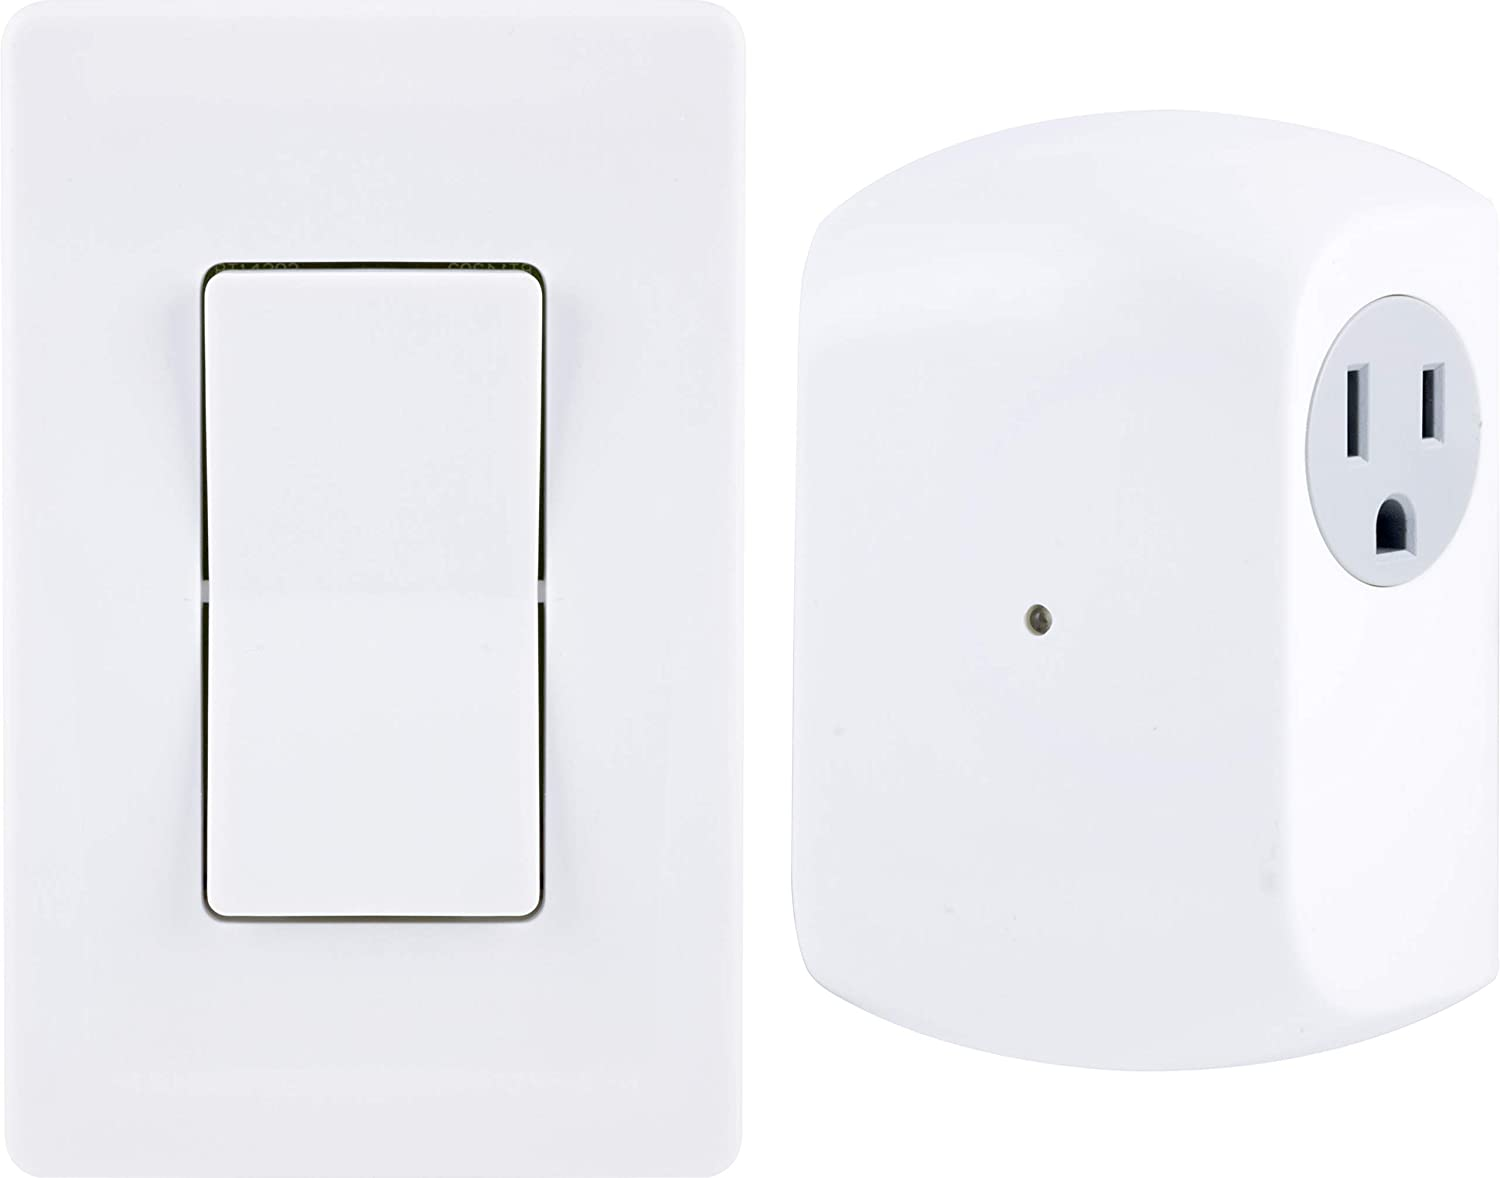 Ge Wireless Remote Wall Switch Control No Wiring Needed 1 Grounded Outlet White Paddle Plug In Upto 100ft Range Ideal For Indoor Lamps Small Appliances And Seasonal Lighting 18279 Other Amazon Com